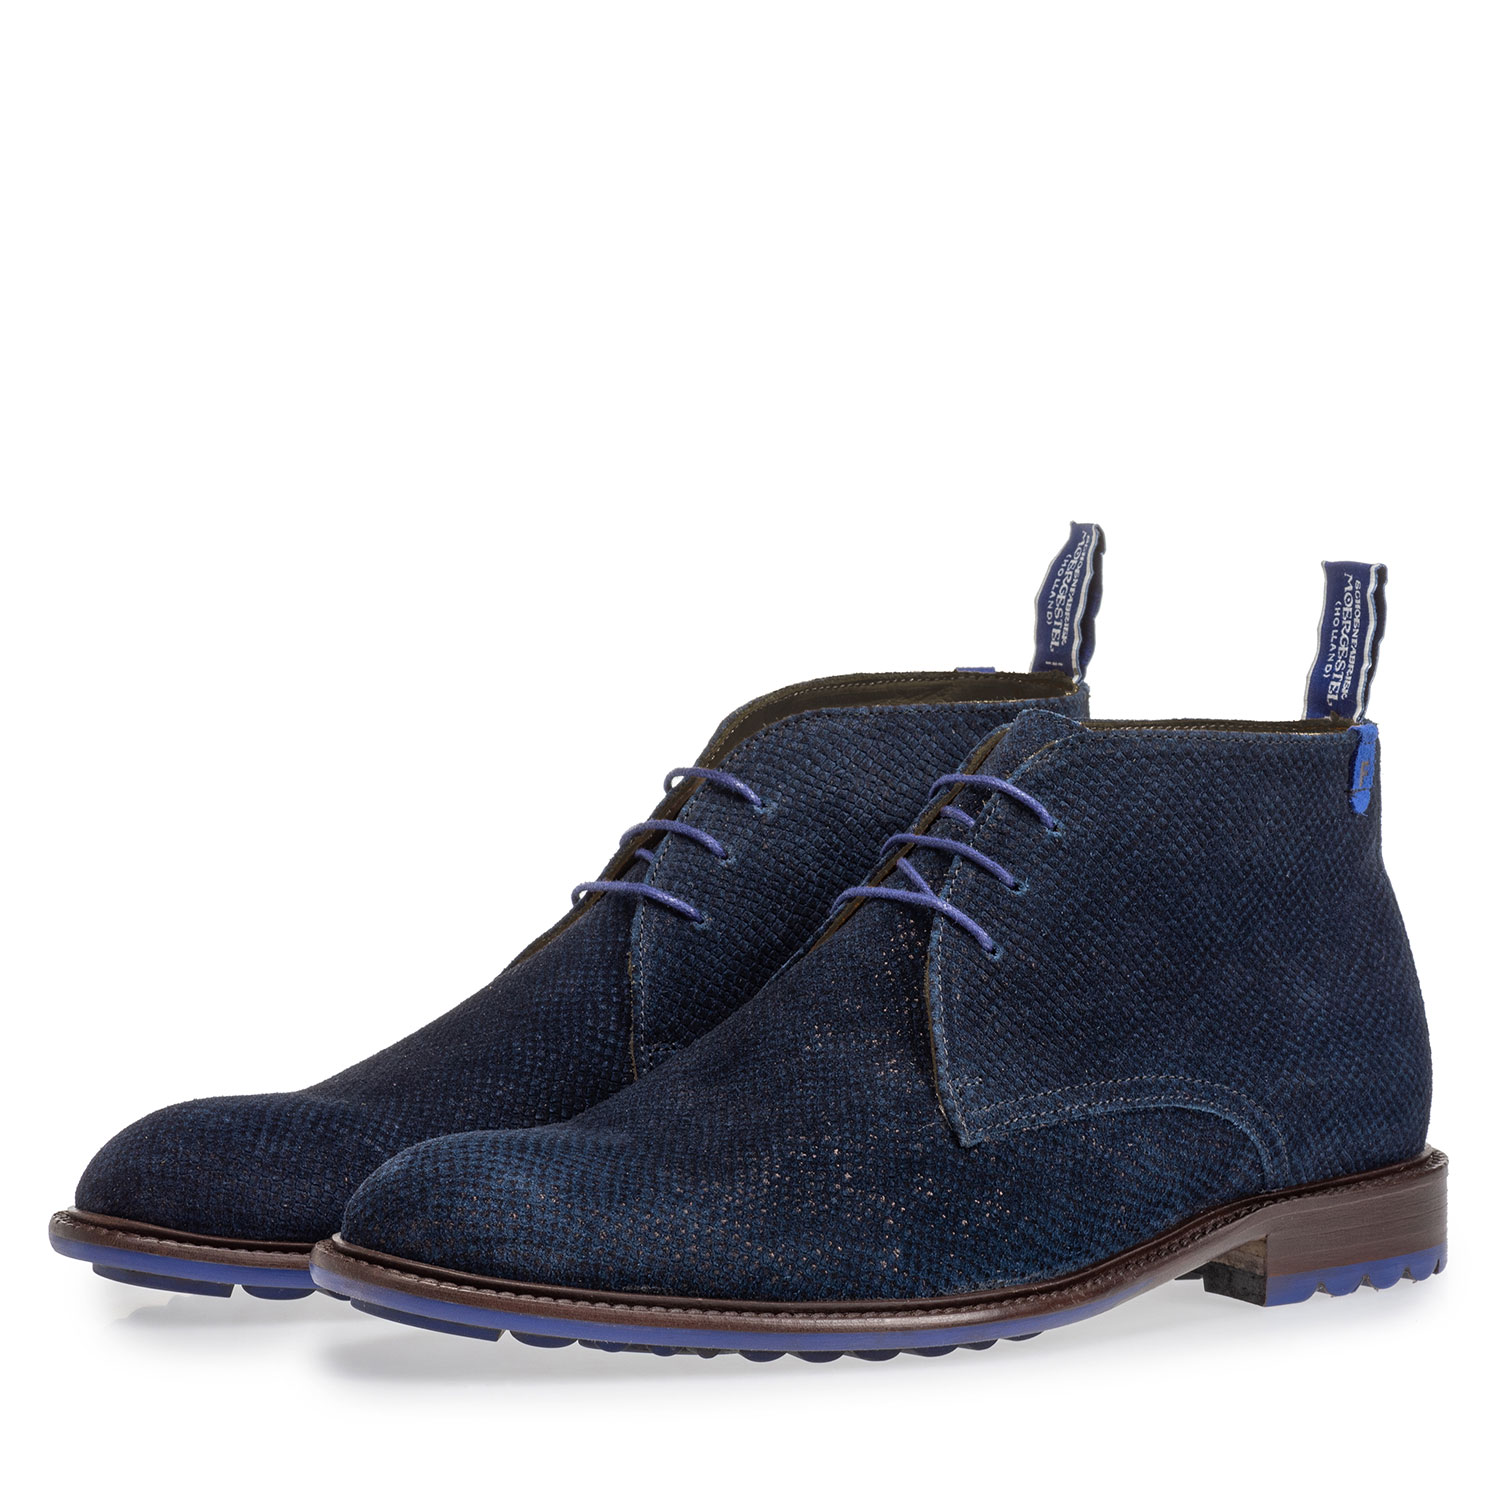 10203/31 - Boot dark blue with print